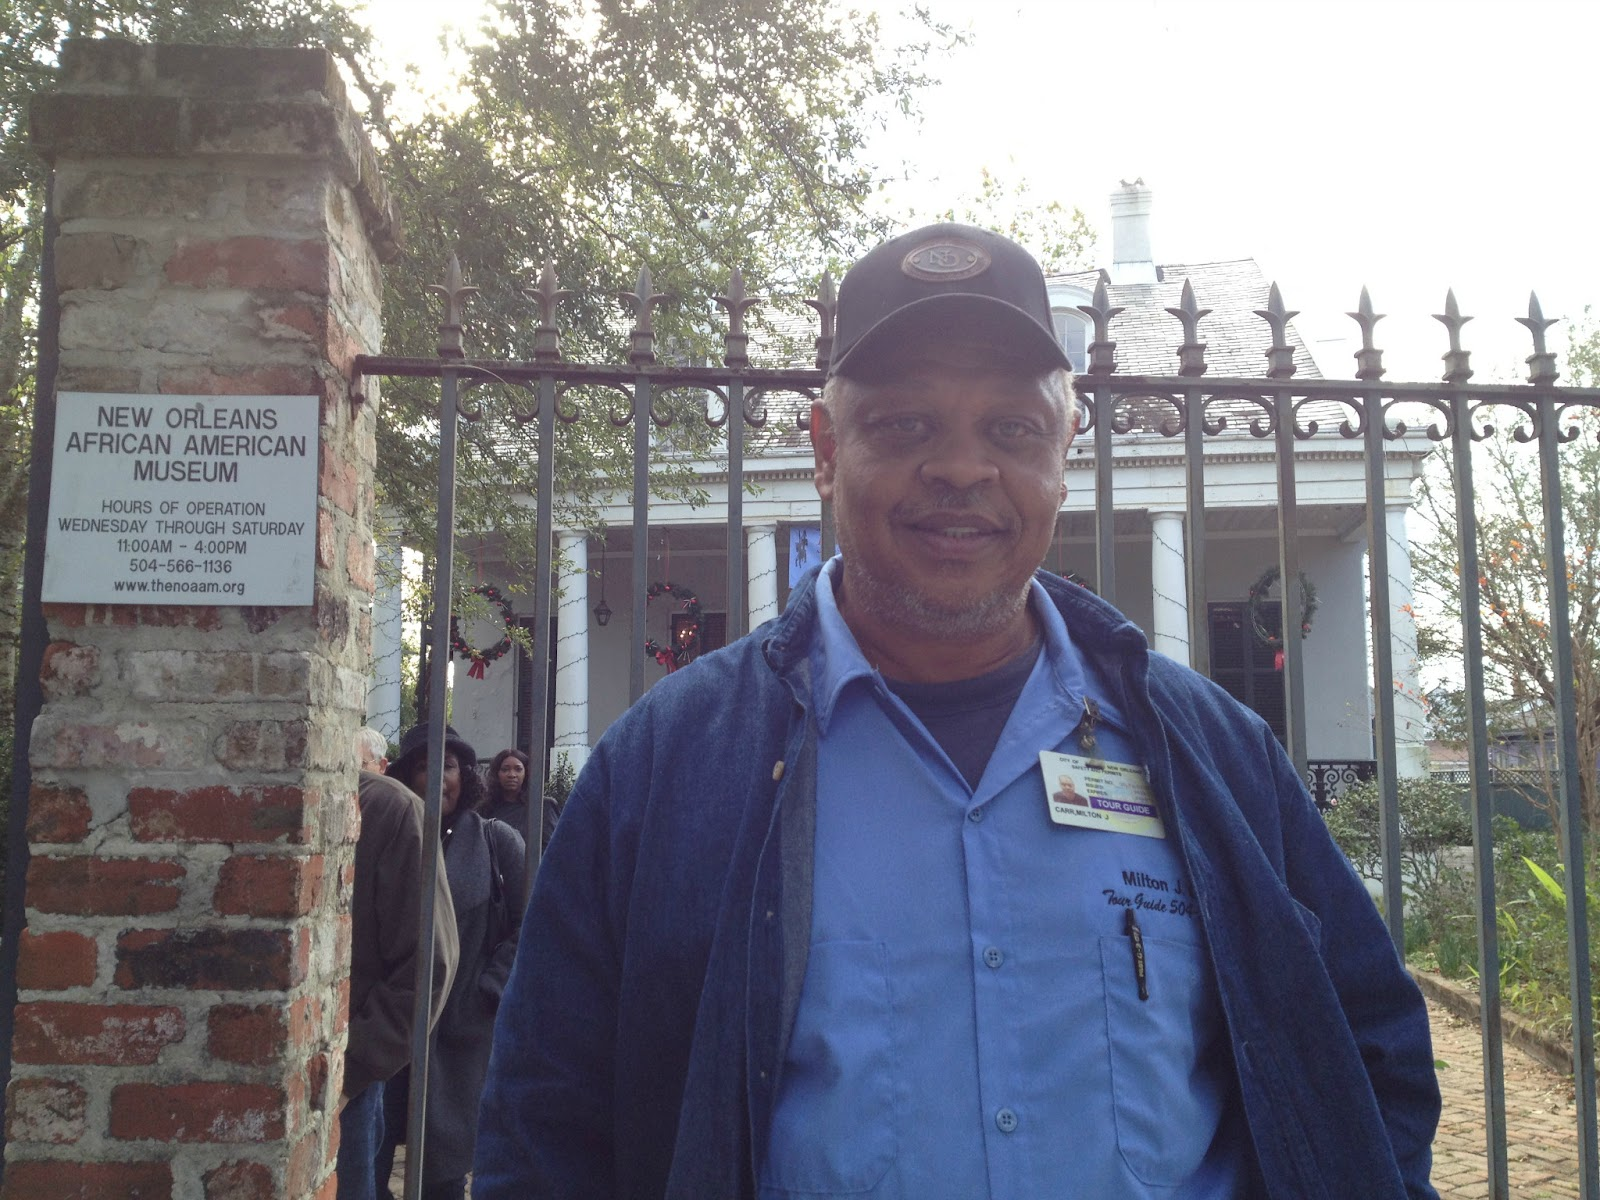 Milton Tour Guide at New Orleans African American Museum